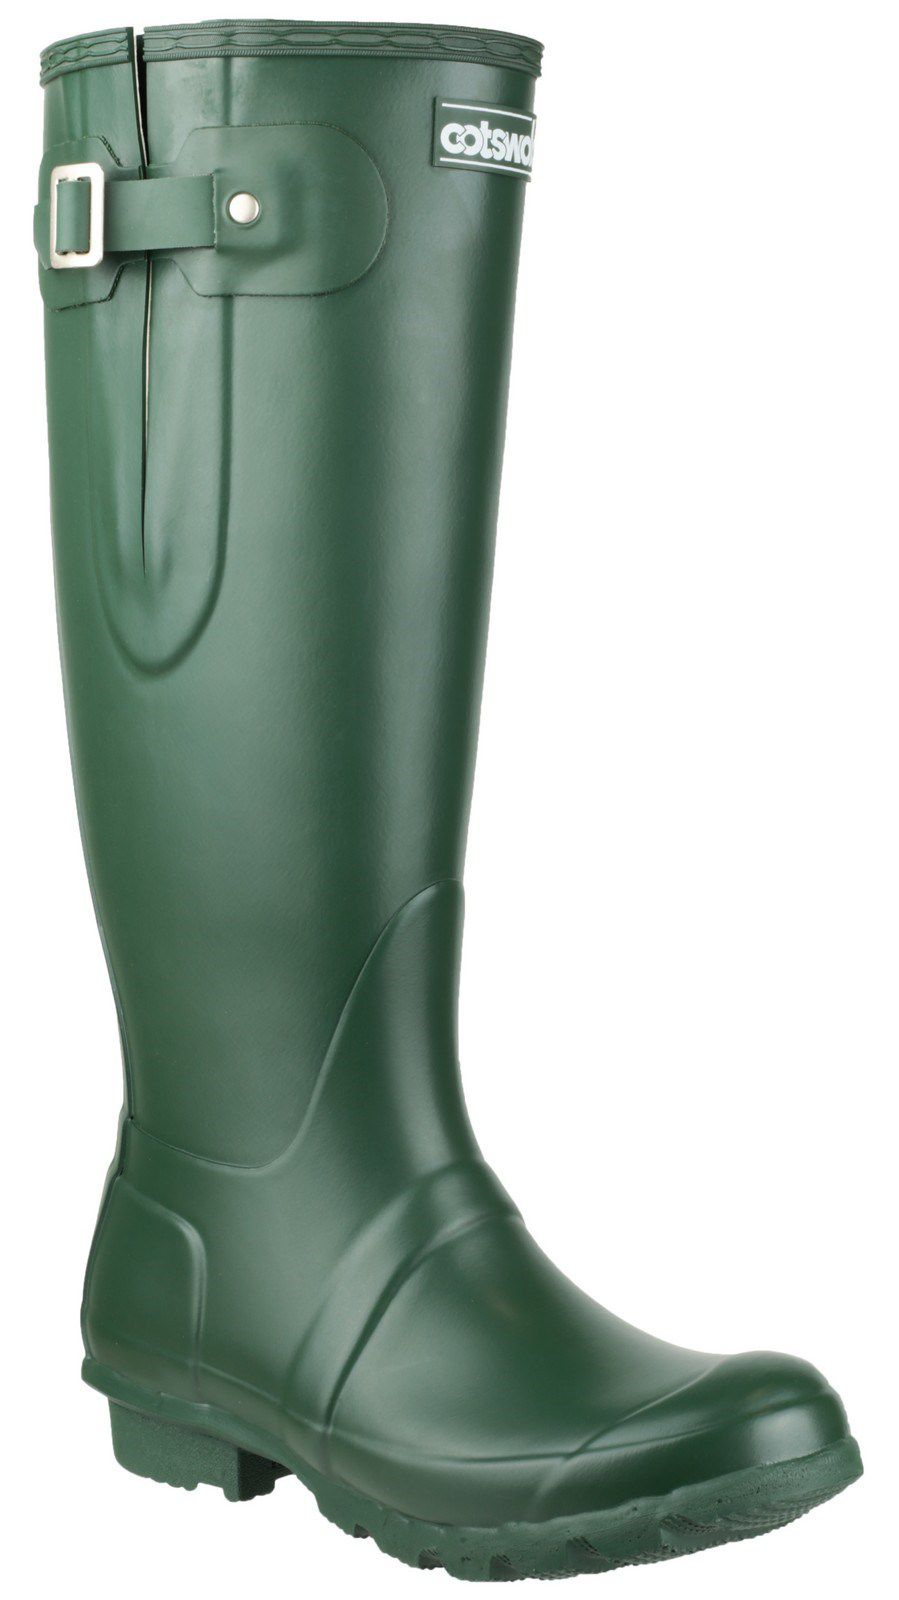 Cotswold Cotswold Windsor wellington boots, Green